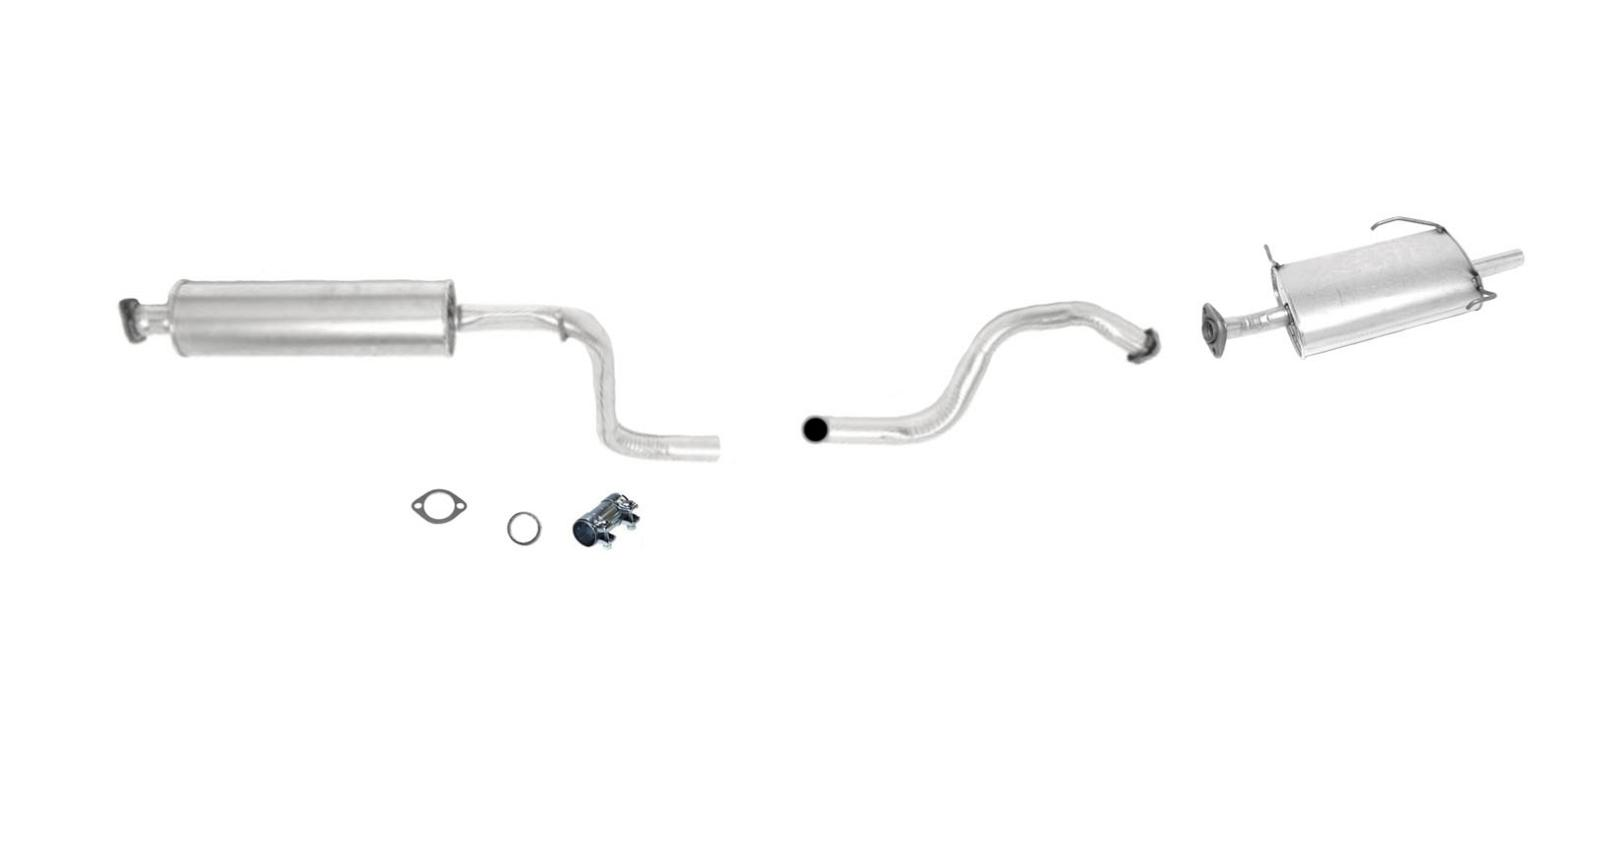 Muffler Exhaust Pipe System Fits 97 03 99 Maxima 97 99